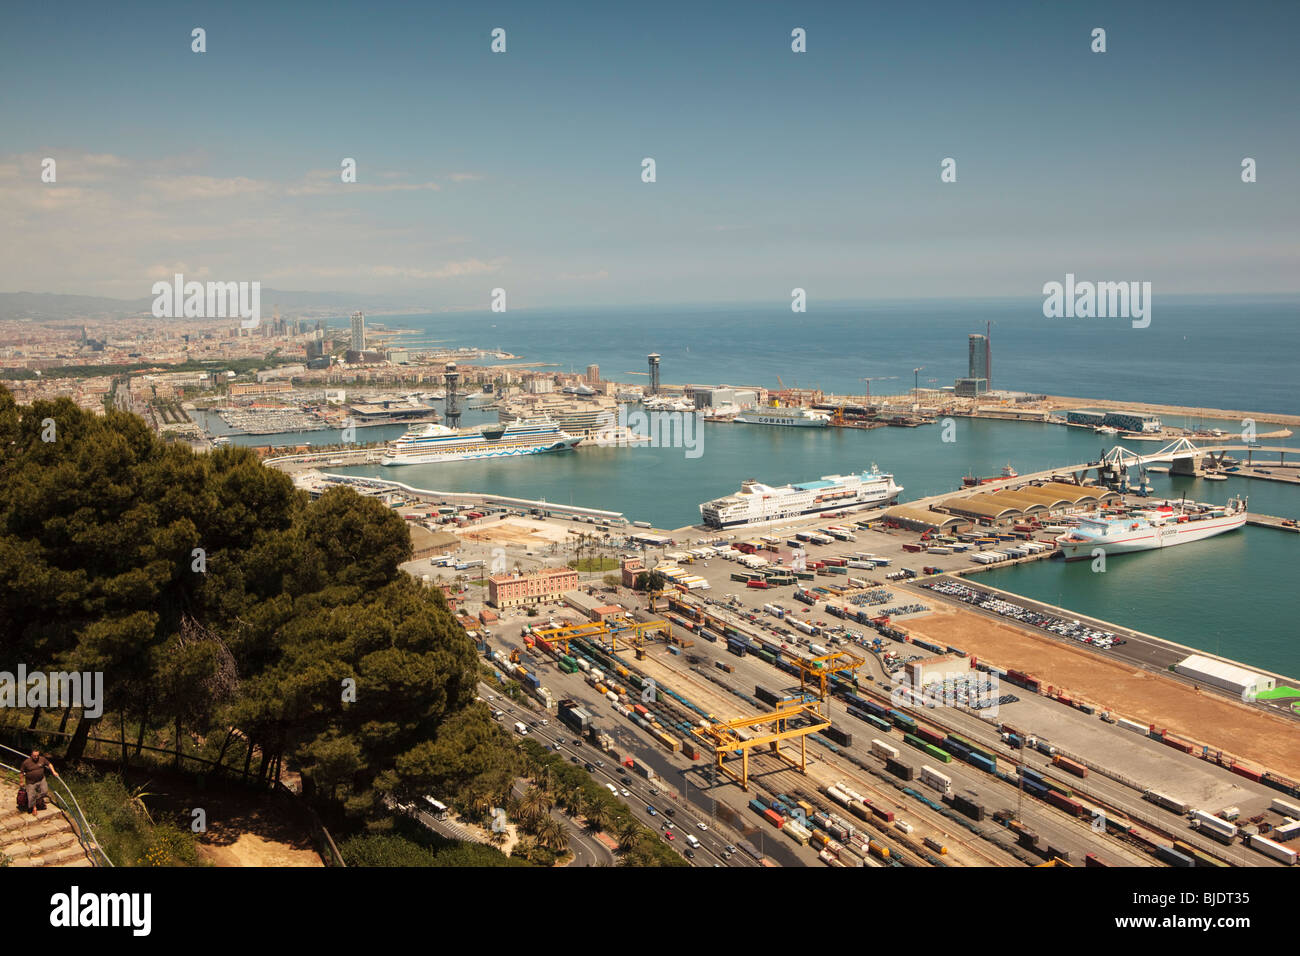 Sea View From Castell De Montjuic Old Military Fortress On Montjuic  Mountain Barcelona Looking To Docks